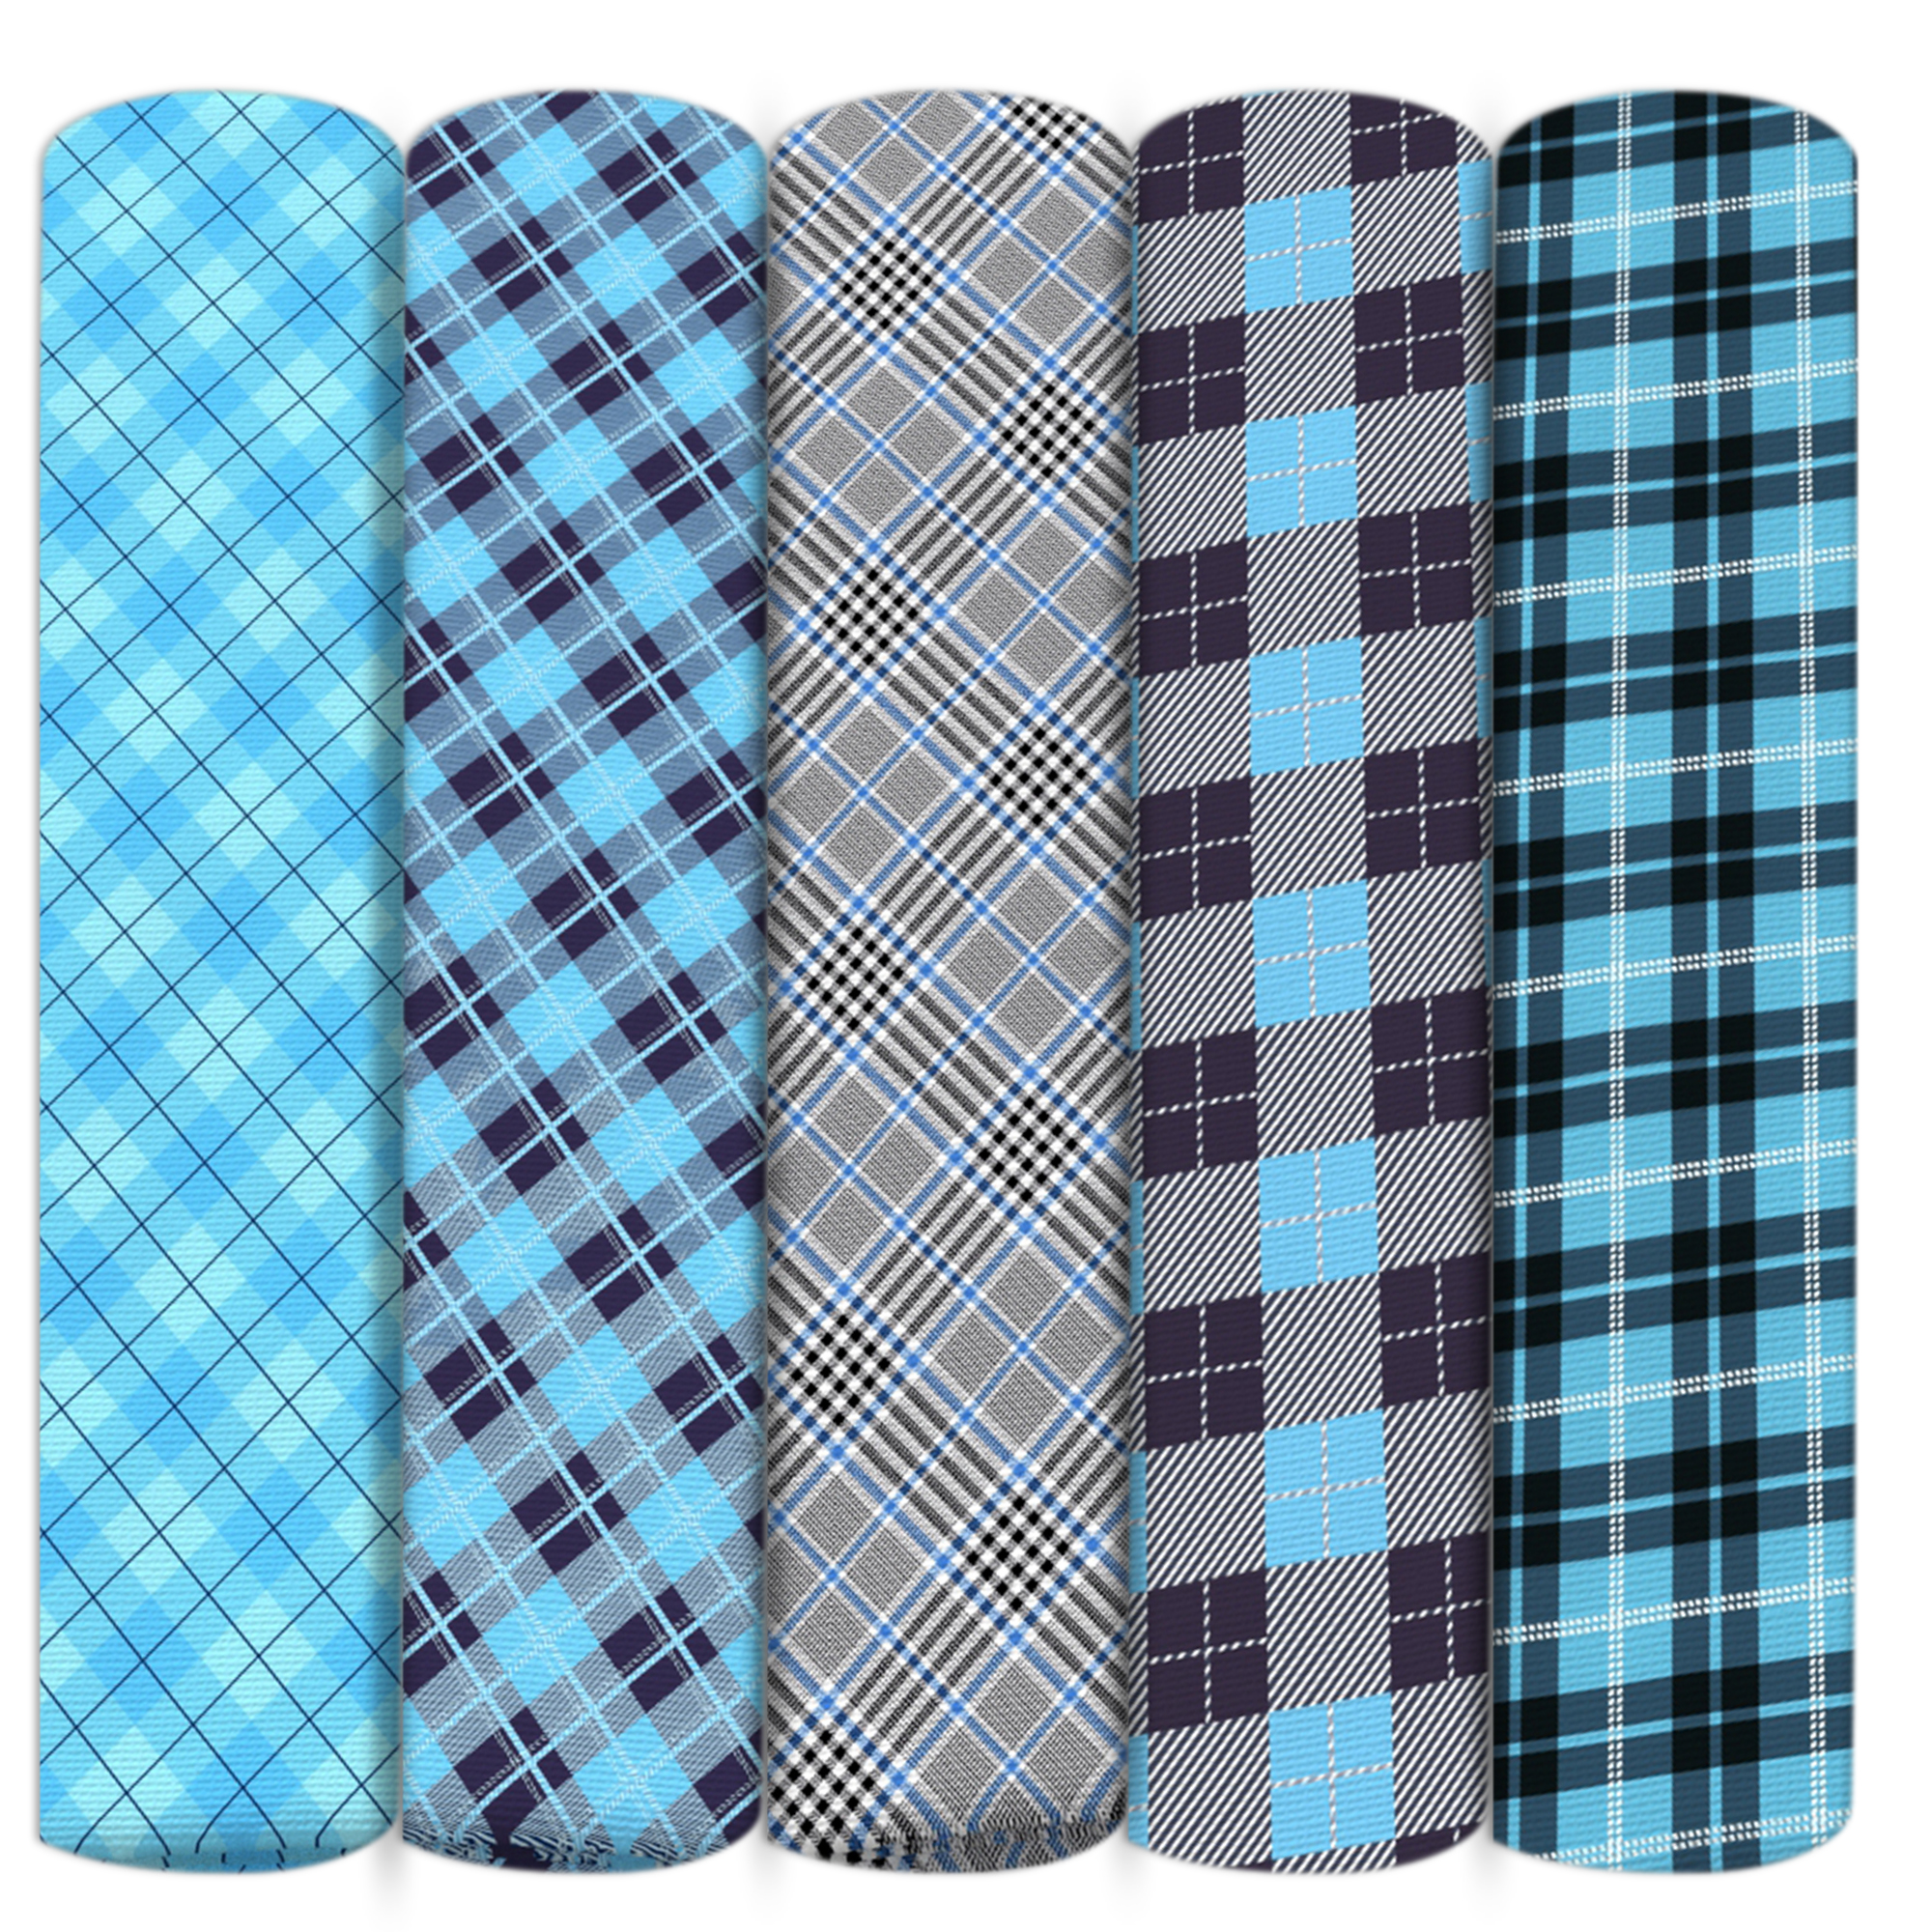 Gentle Blue Plaid Grid Geometric Patterns Polyester Cotton Fabric Patchwork Sew Quilting Needlework Material Diy Cloth,1yc14210 To Win A High Admiration And Is Widely Trusted At Home And Abroad.